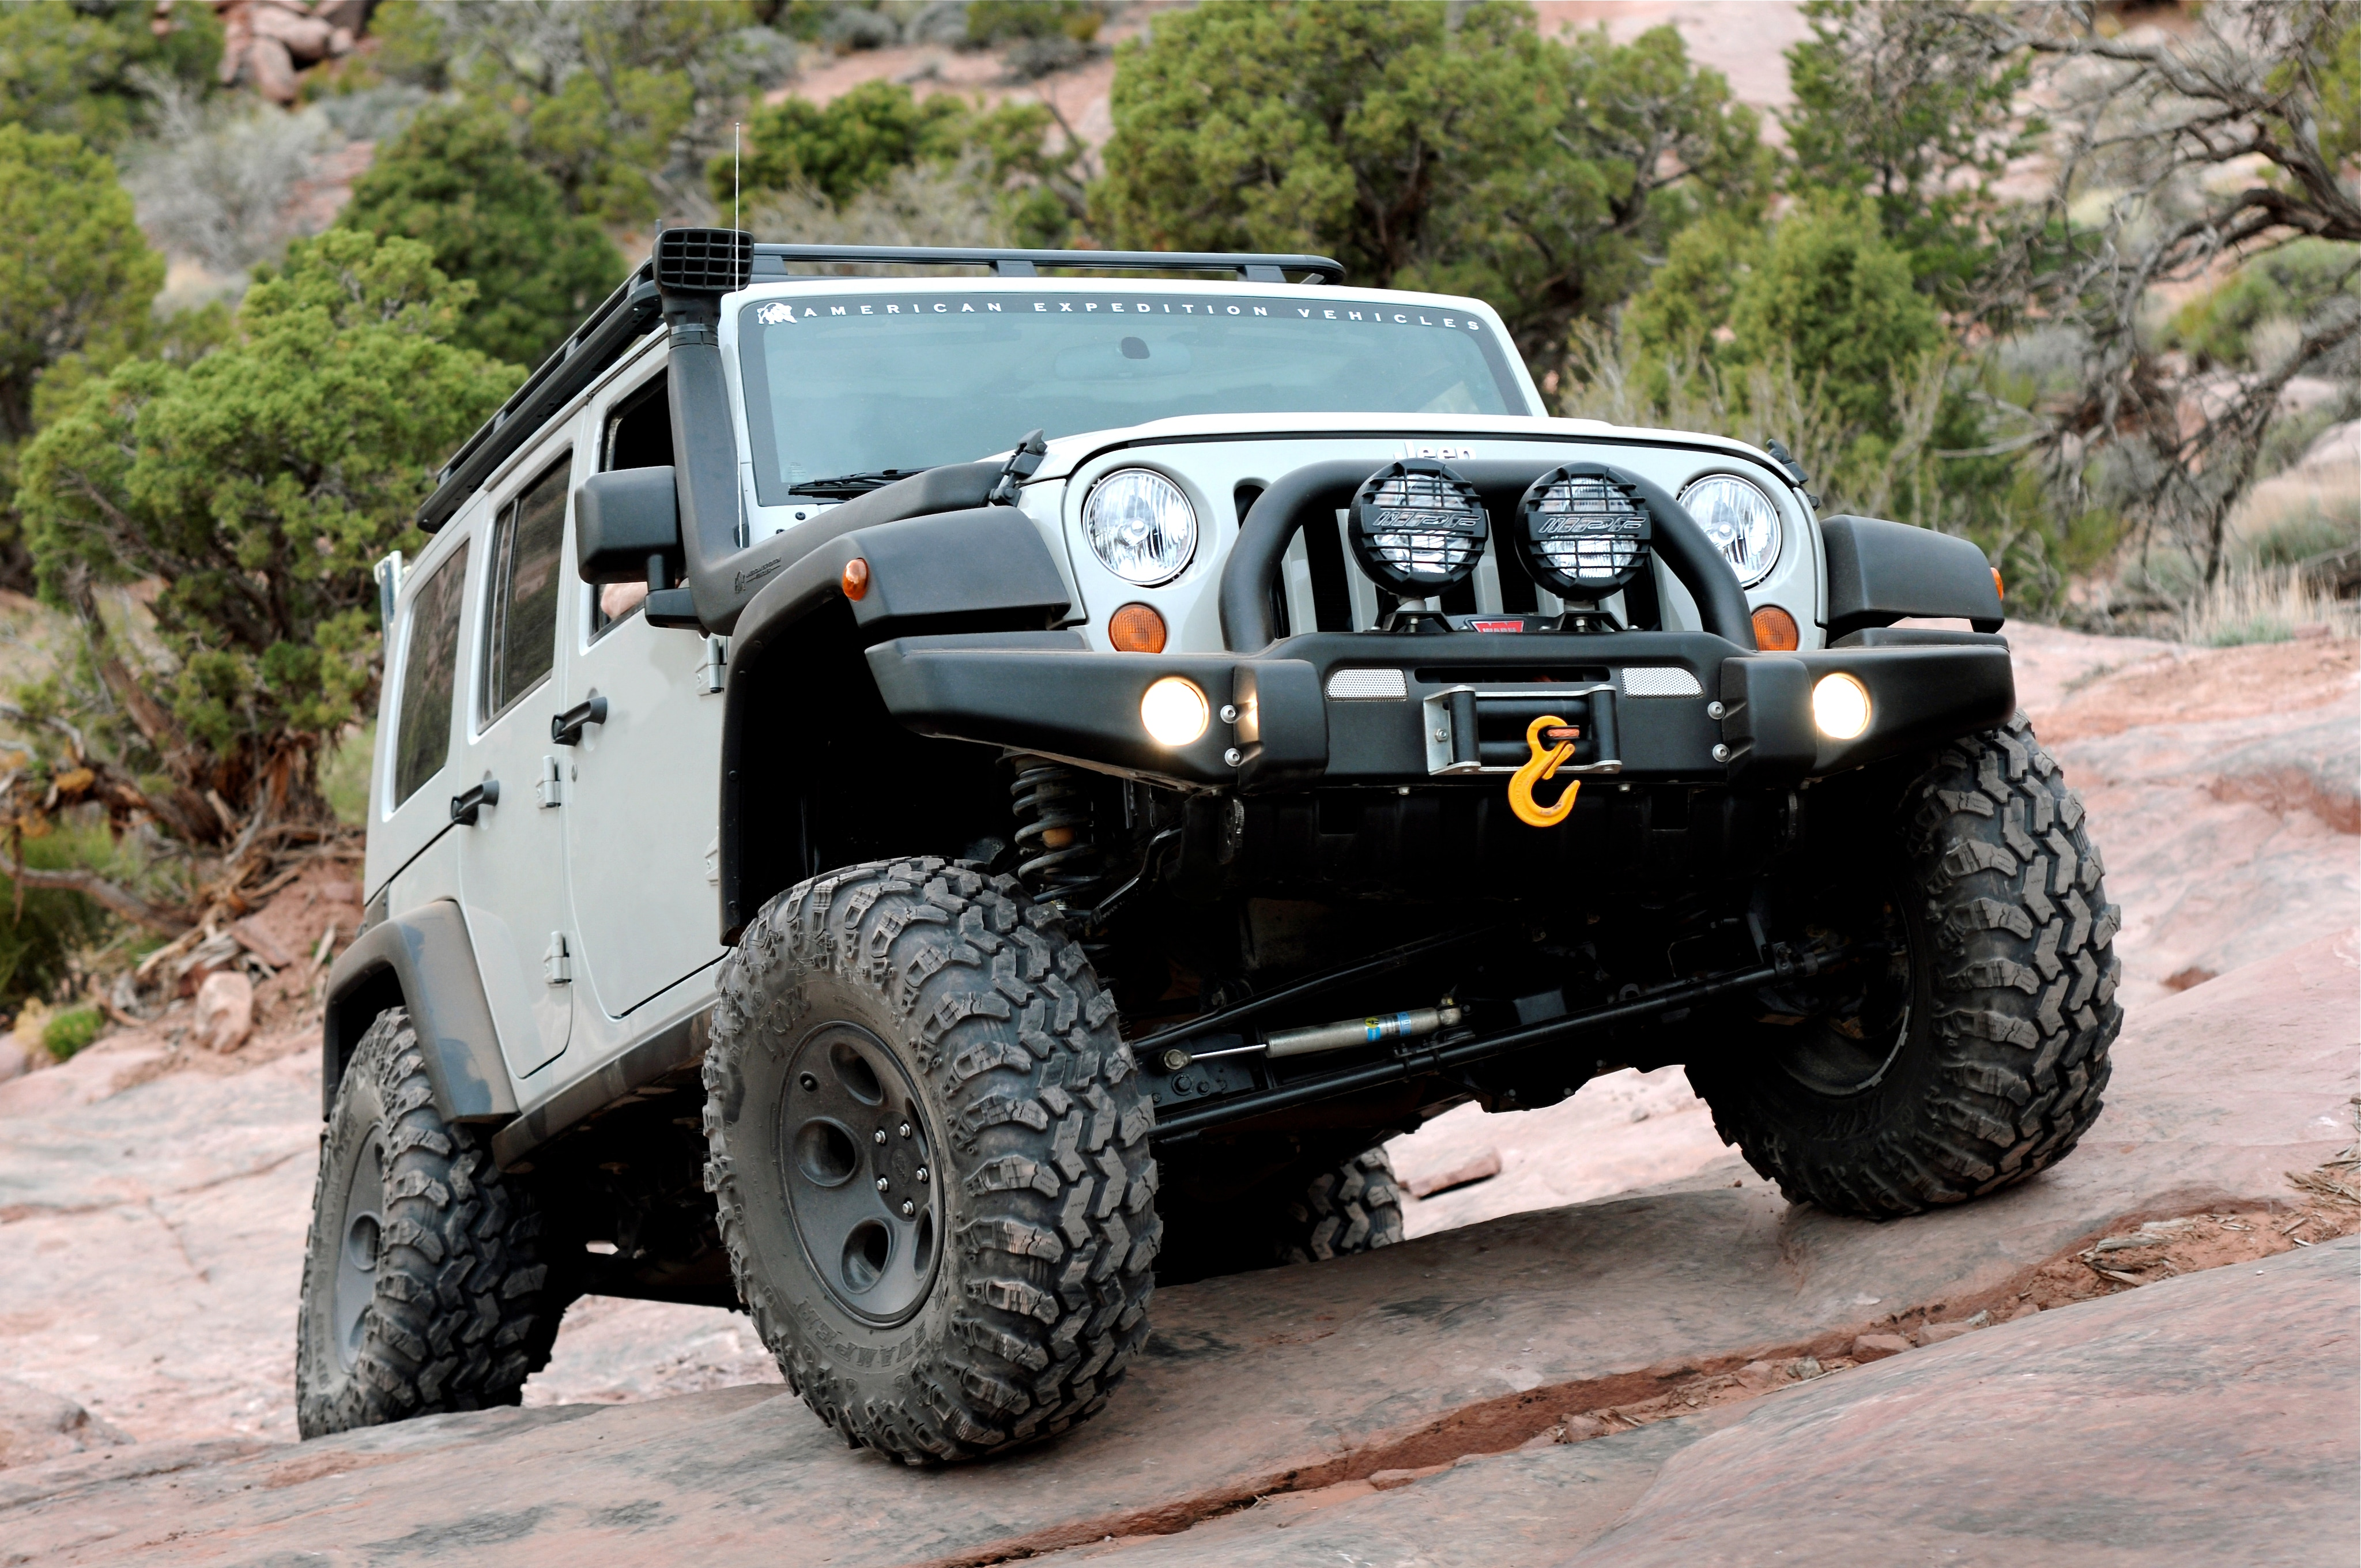 American Expedition Vehicles Authorized Dealer